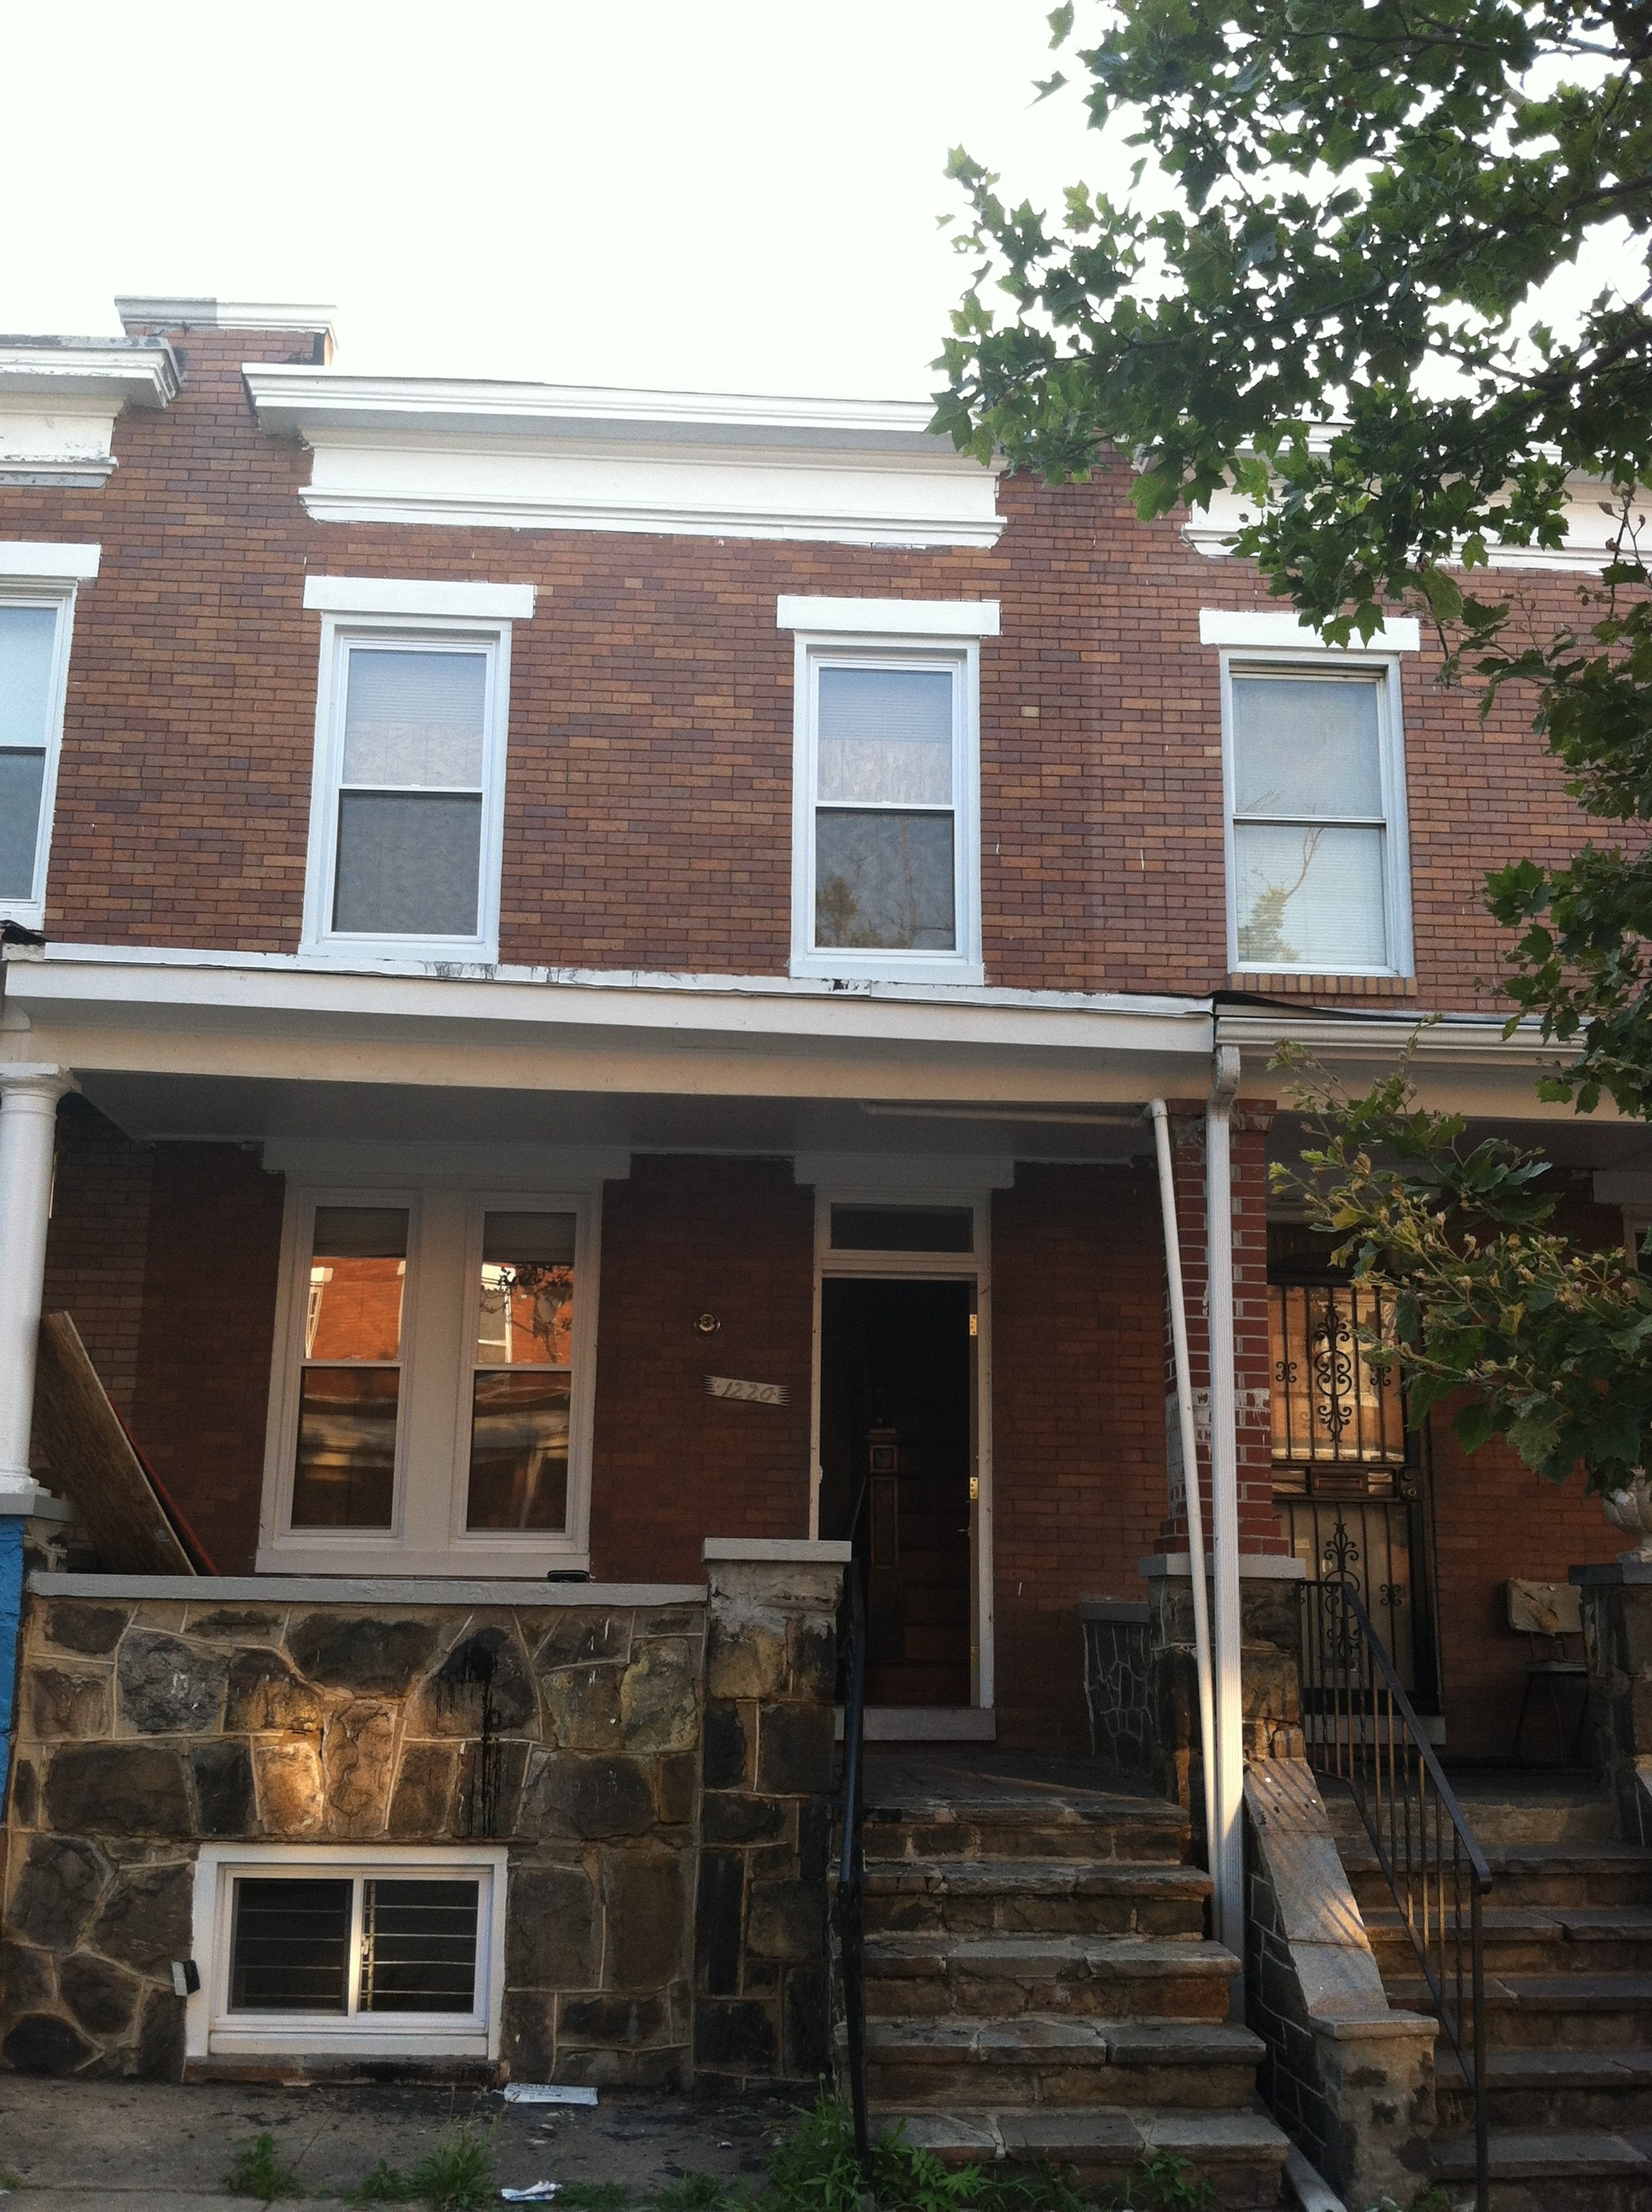 3 bedroom houses for rent in cleveland tn 1220 n potomac st baltimore md 21213 3 bedroom apartment 21213